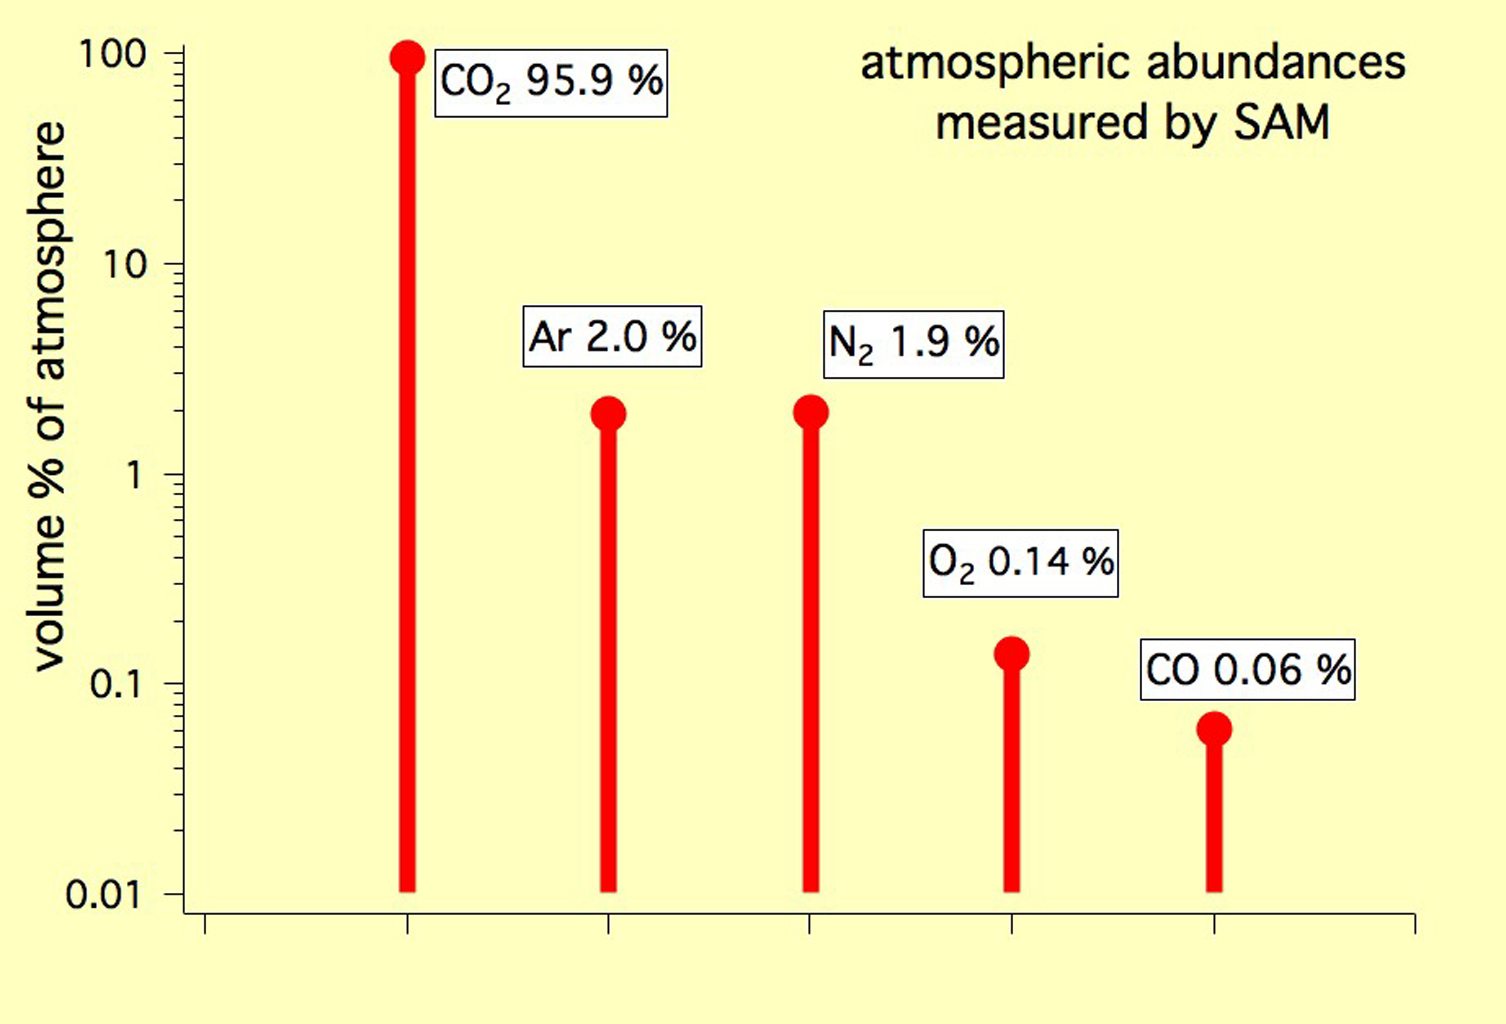 The Most Abundant Gas In The Atmosphere Is >> Space Images The Five Most Abundant Gases In The Martian Atmosphere